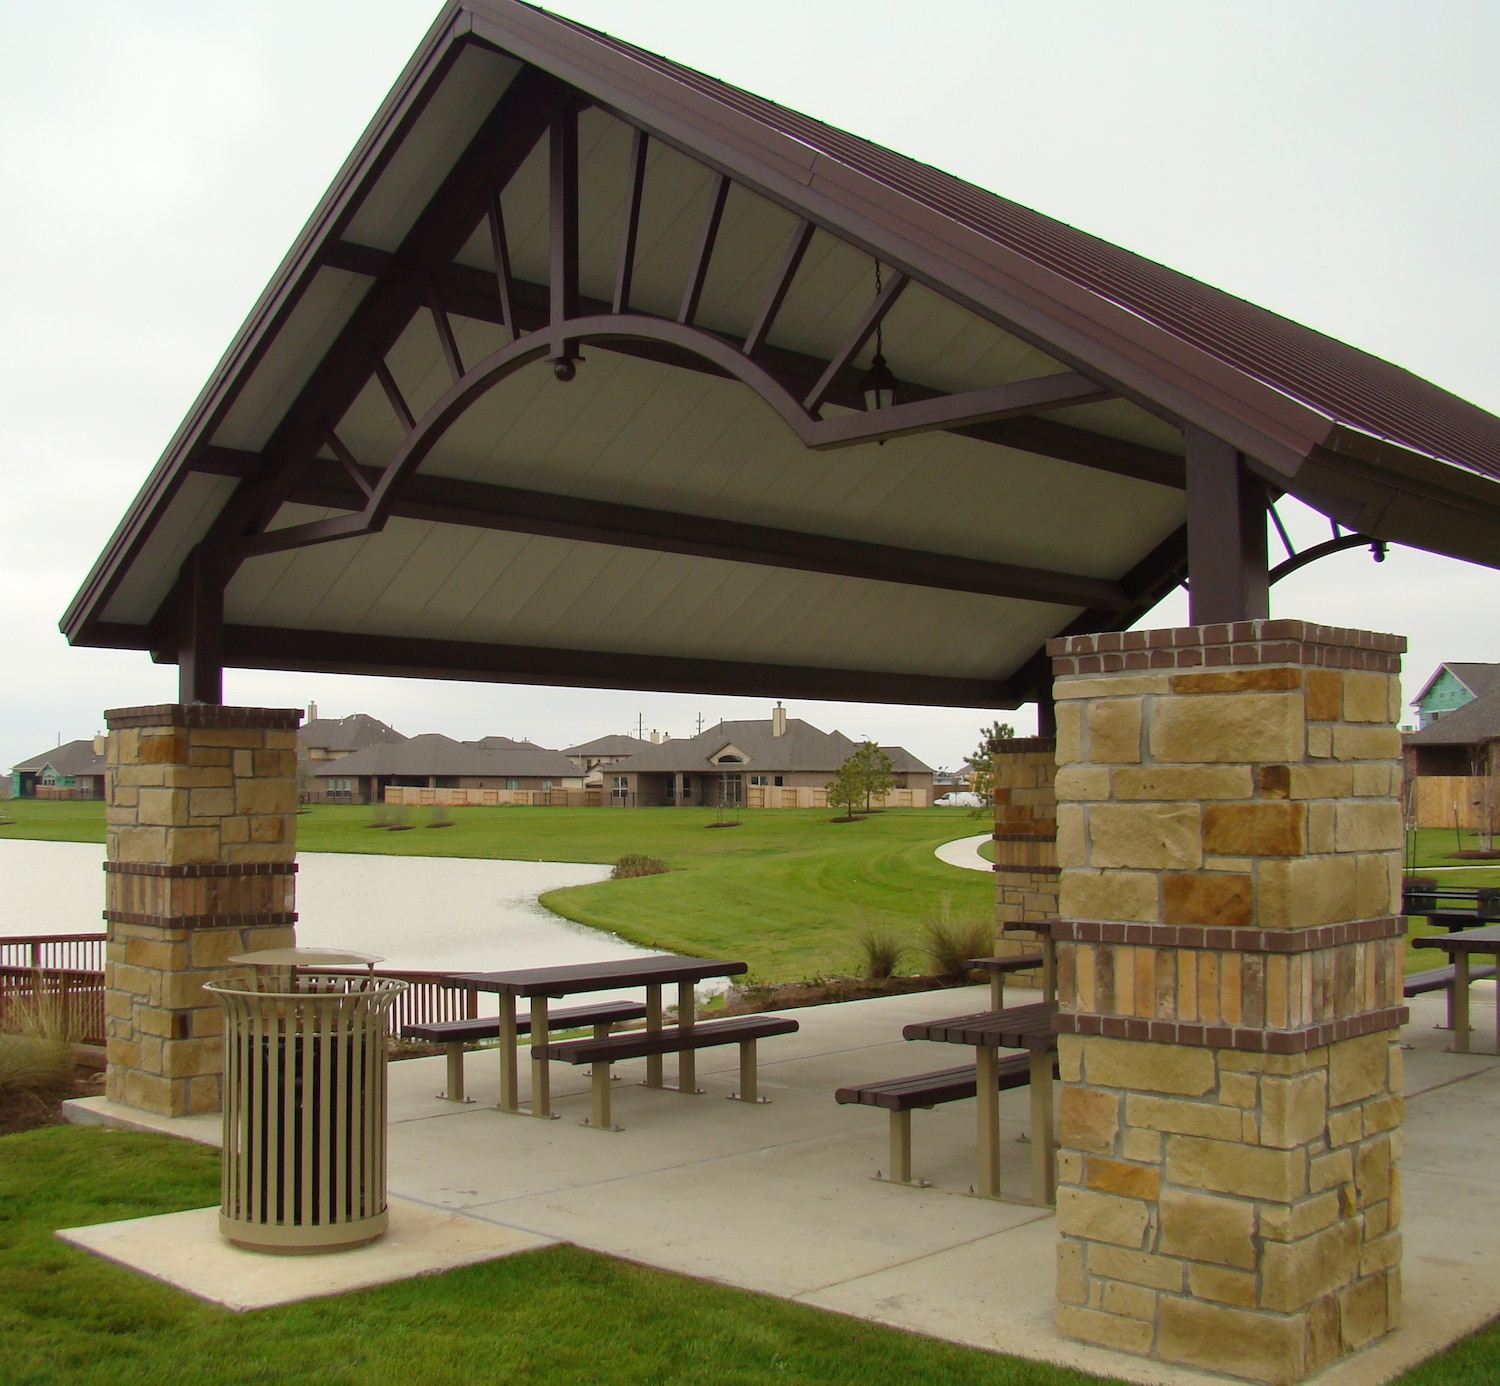 Stone and brown steel shelter with picnic benches near a lake in a neighborhood.